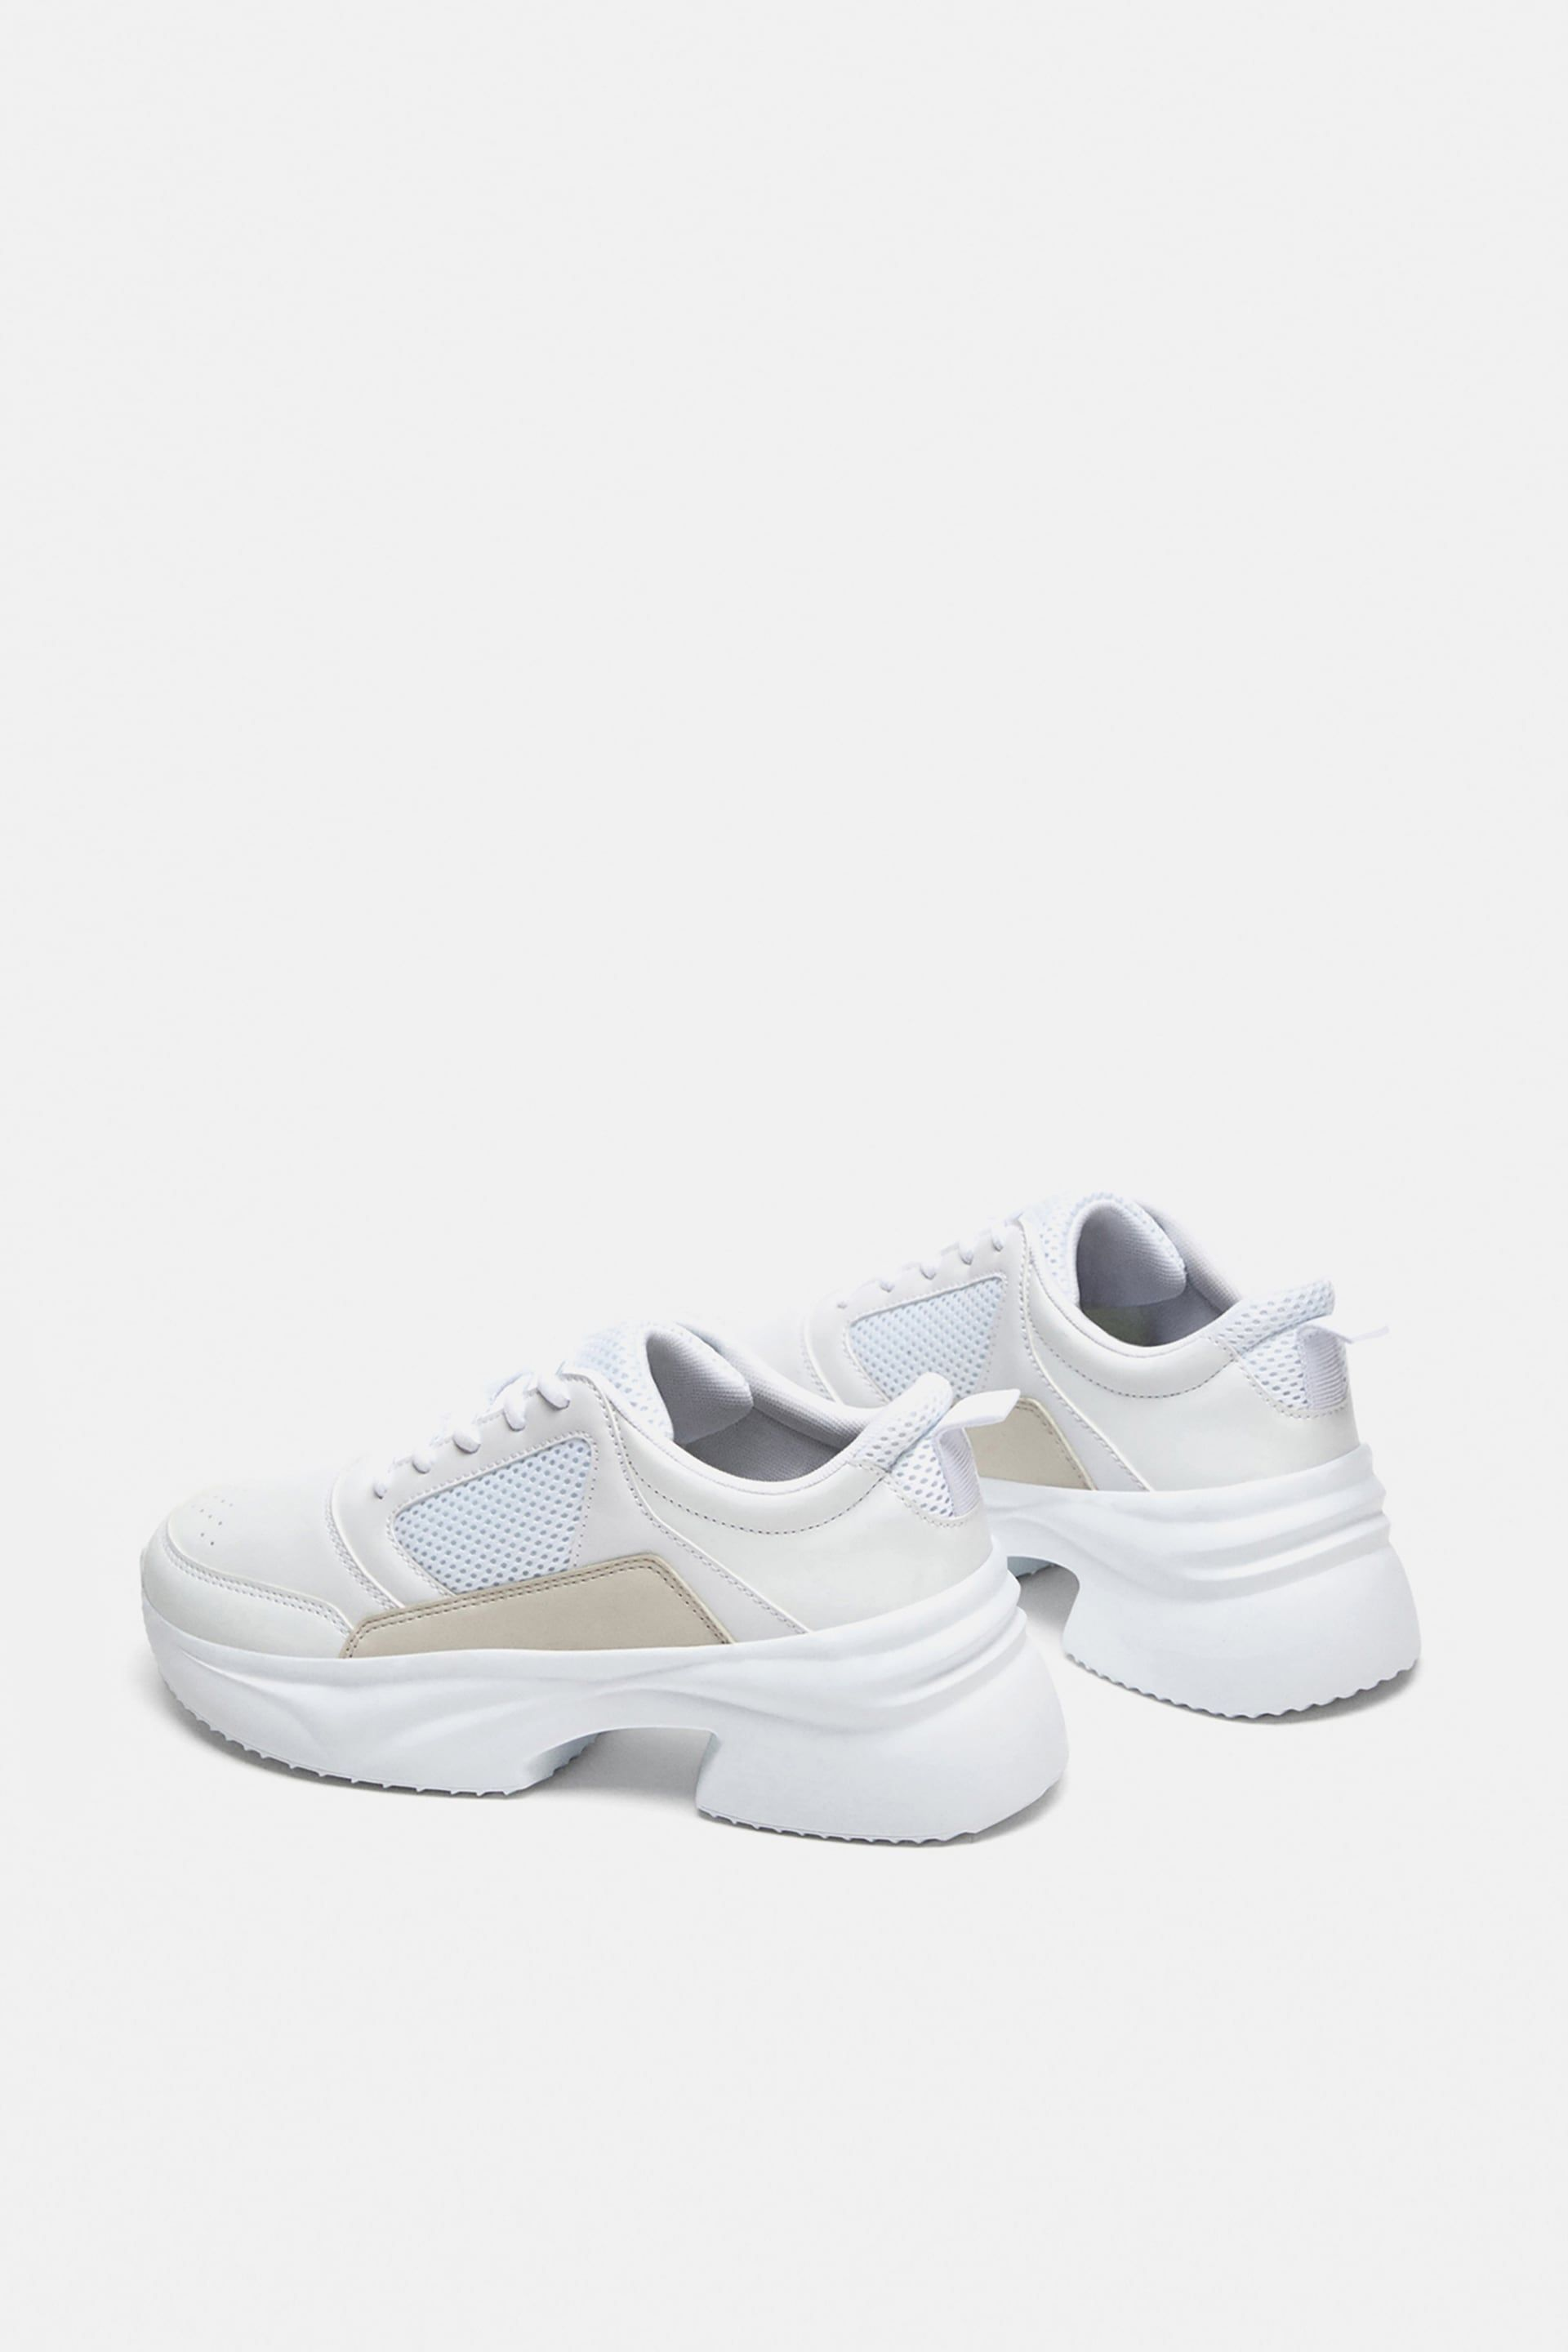 THICK SOLED SNEAKERS from Zara